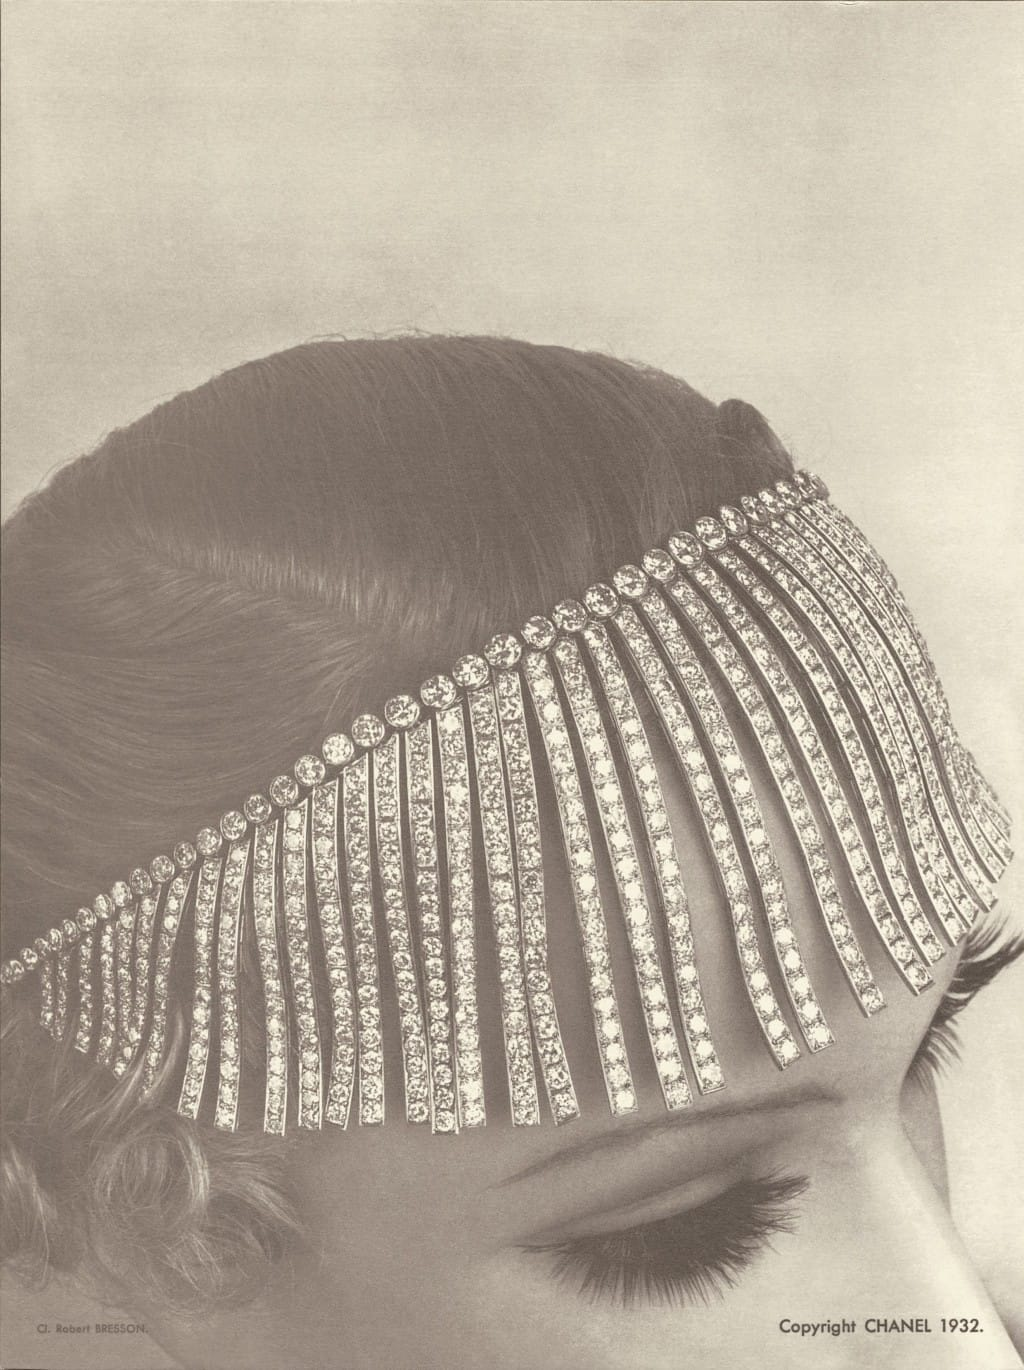 Franges Necklace from original Chanel Bijoux des Diamantes collection 1932